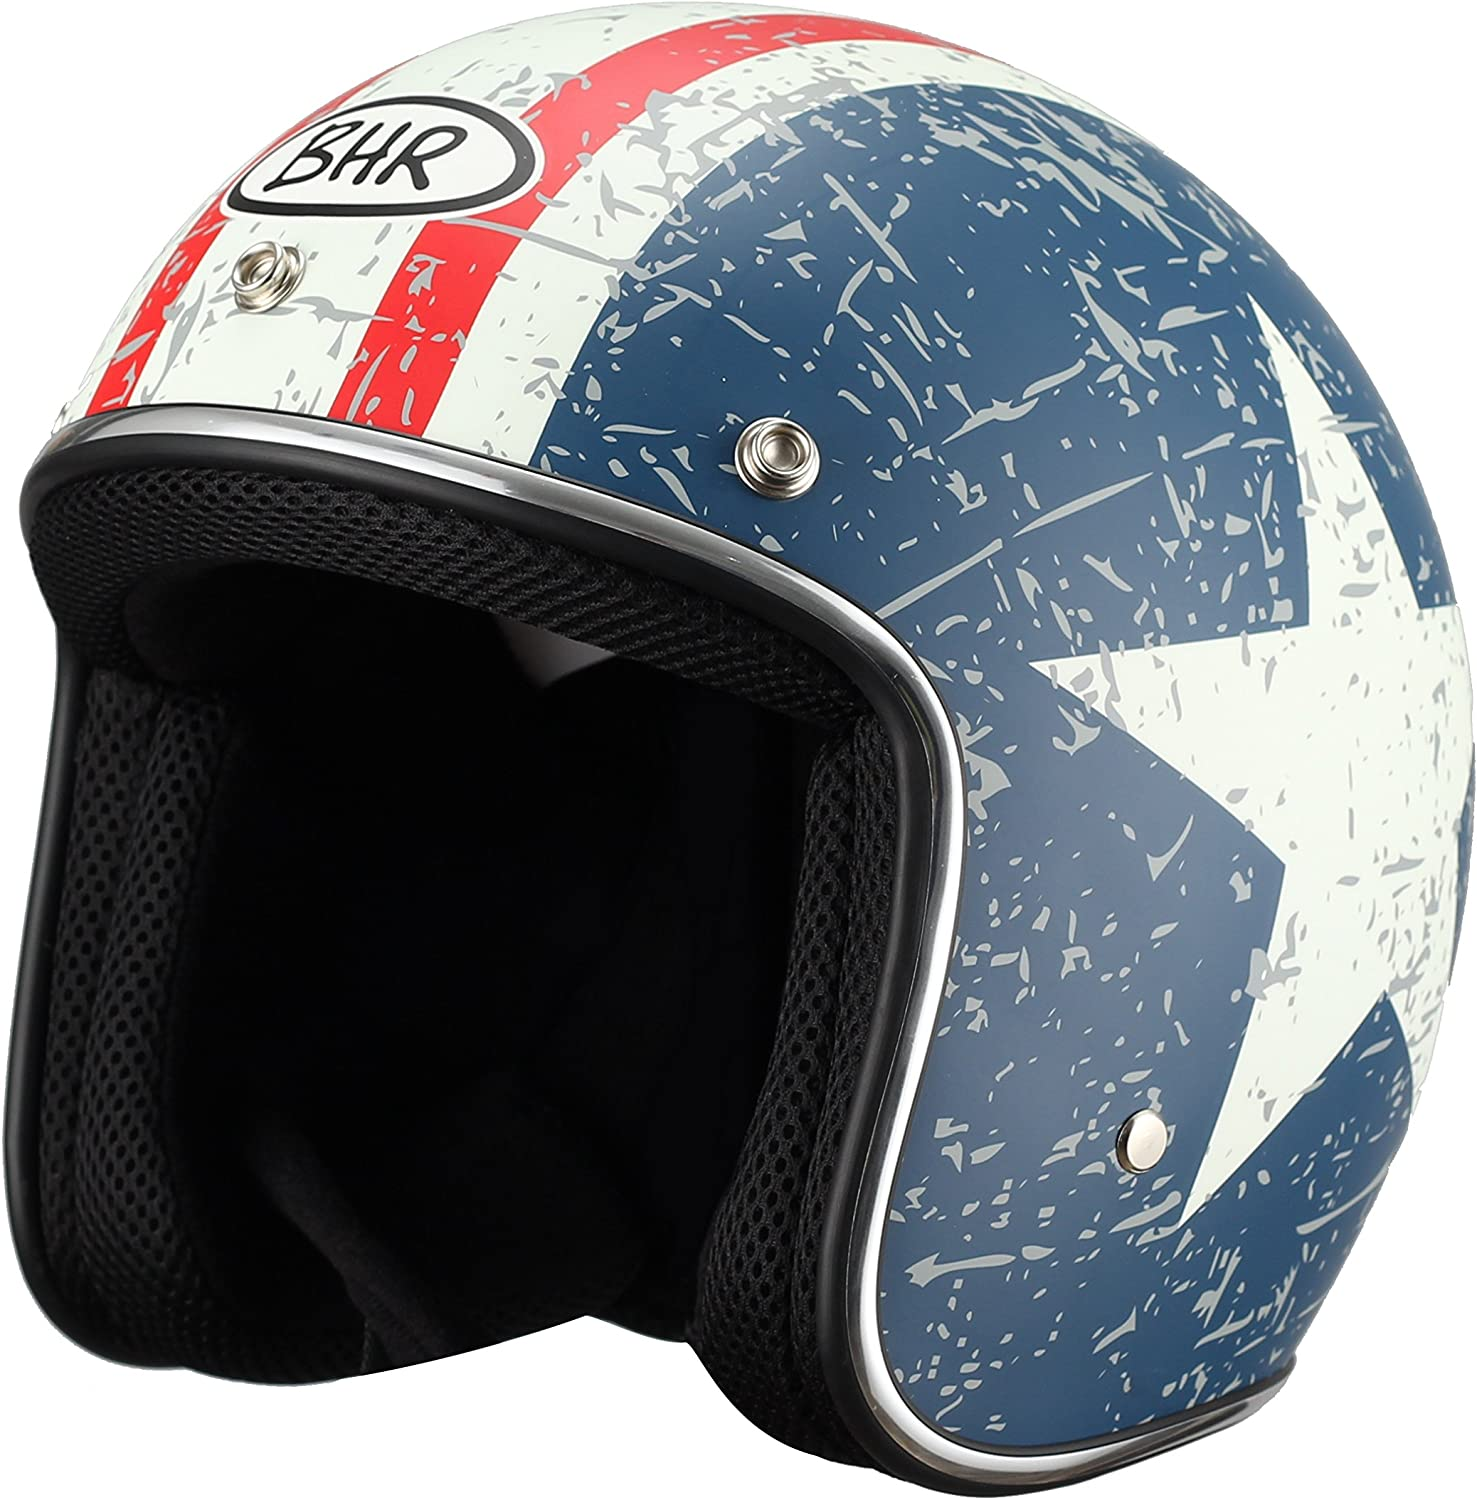 BHR Jet Helmet 711 53//54 Black//Orange